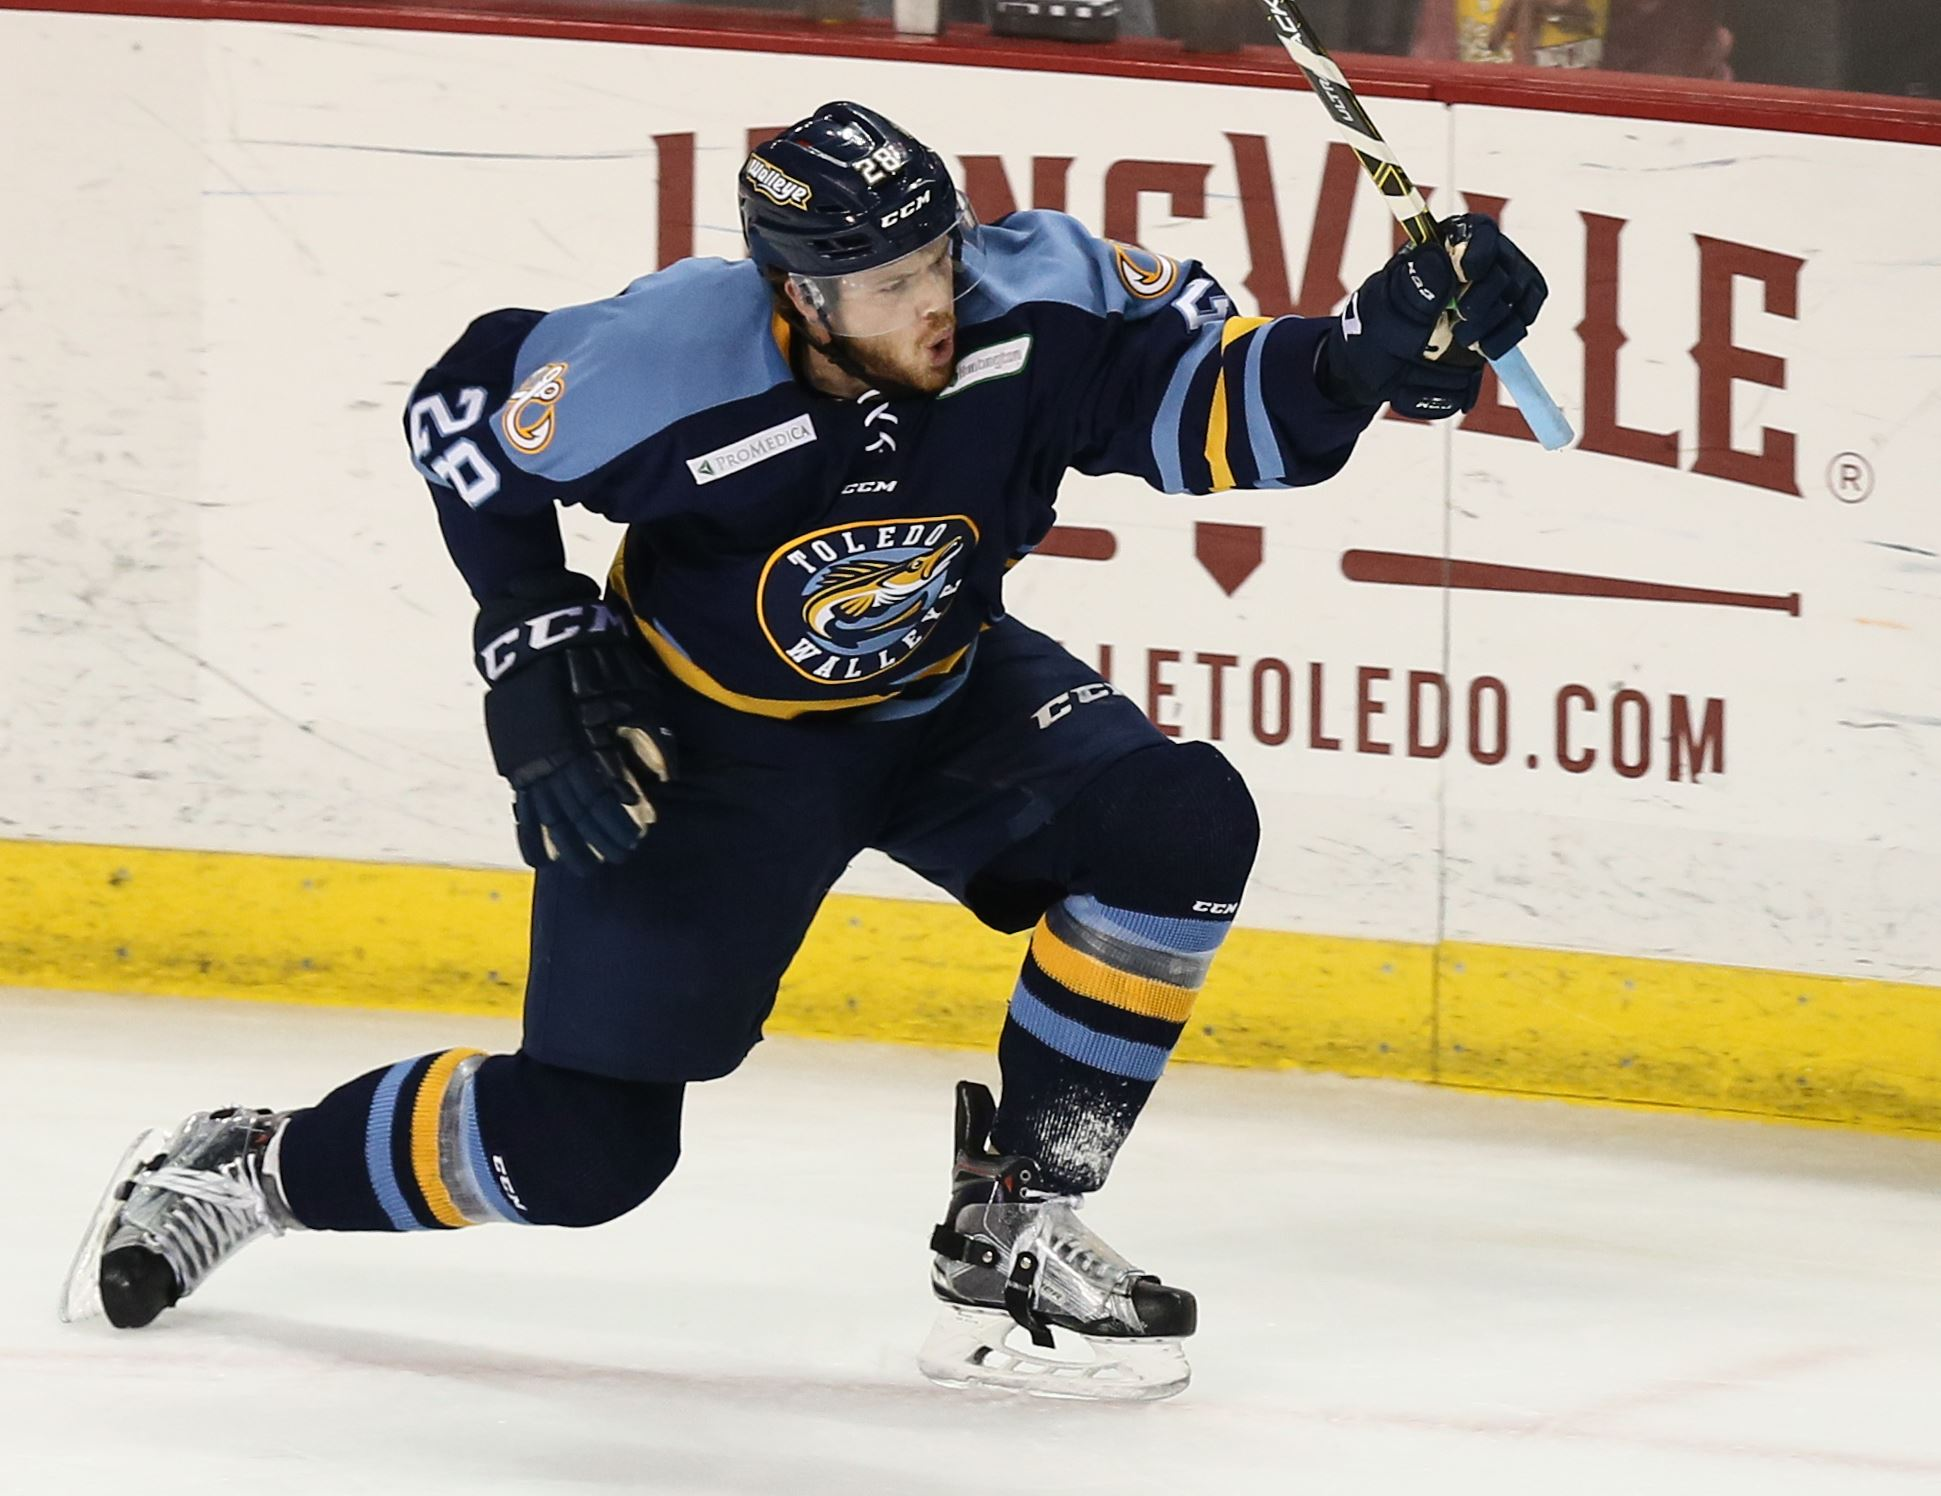 ECHL: Walleye's Bonis Promoted To Minor AHL's Rochester Team